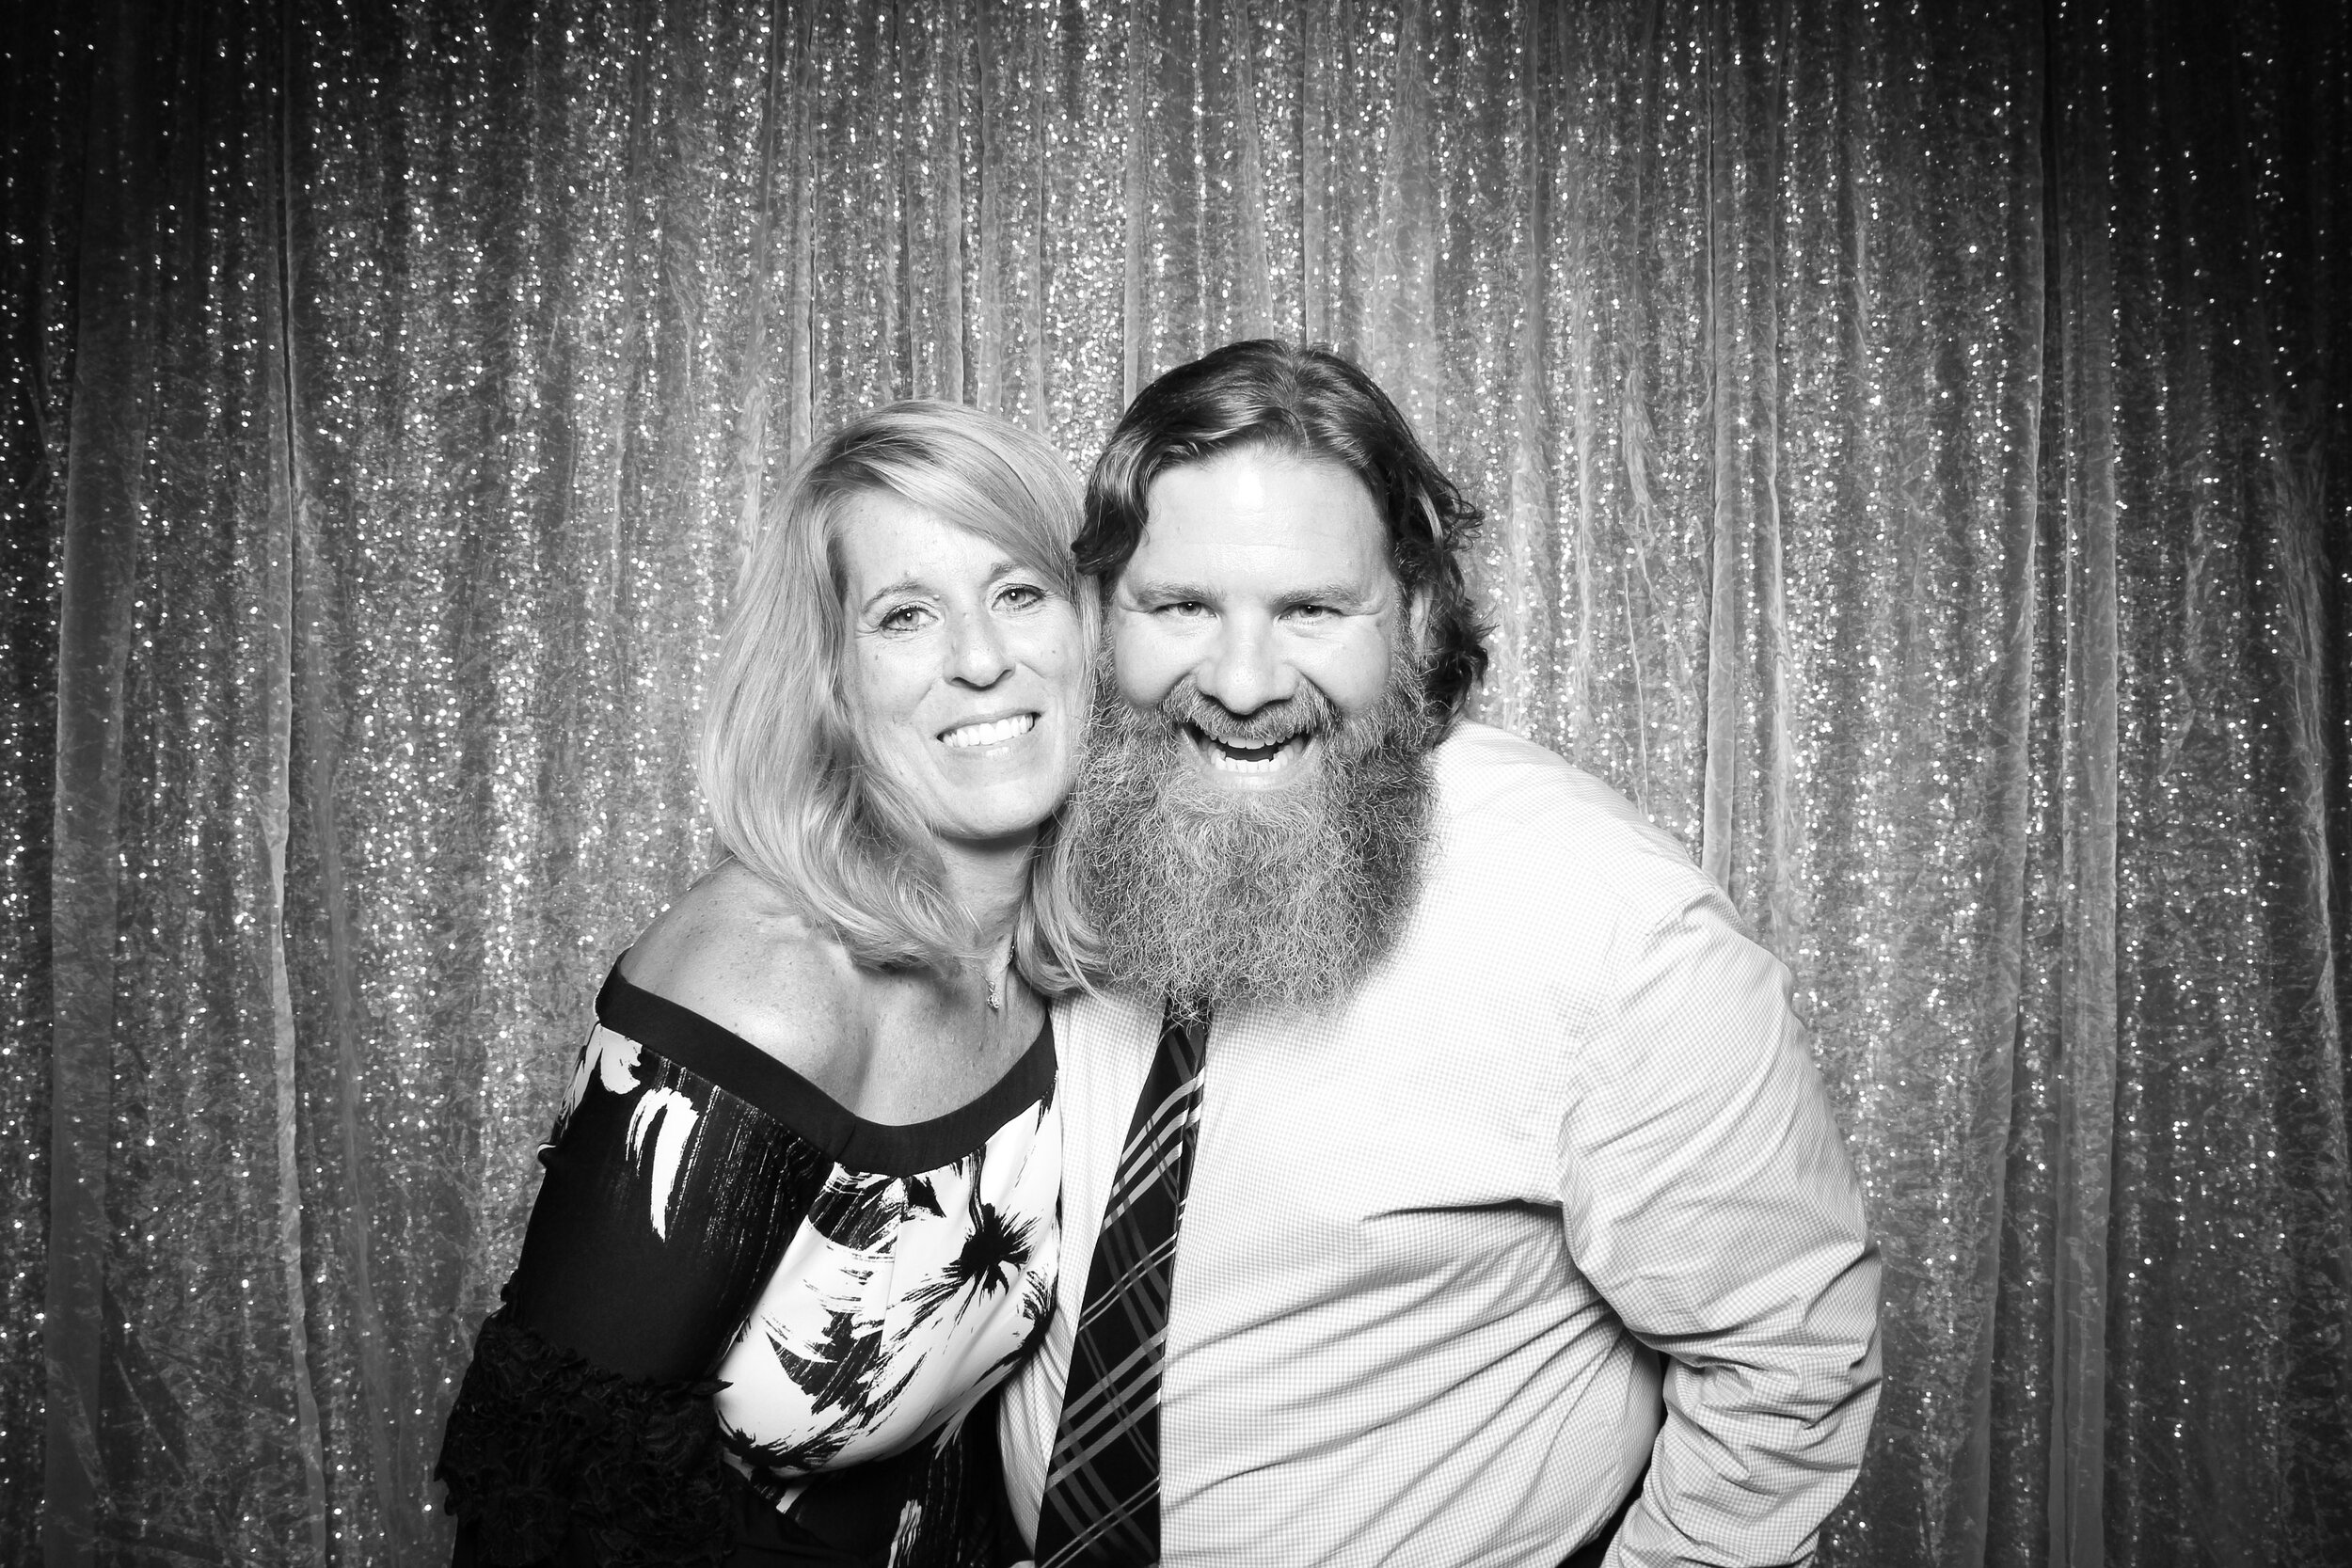 Ravisloe_Country_Club_Wedding_Photo_Booth_14.jpg